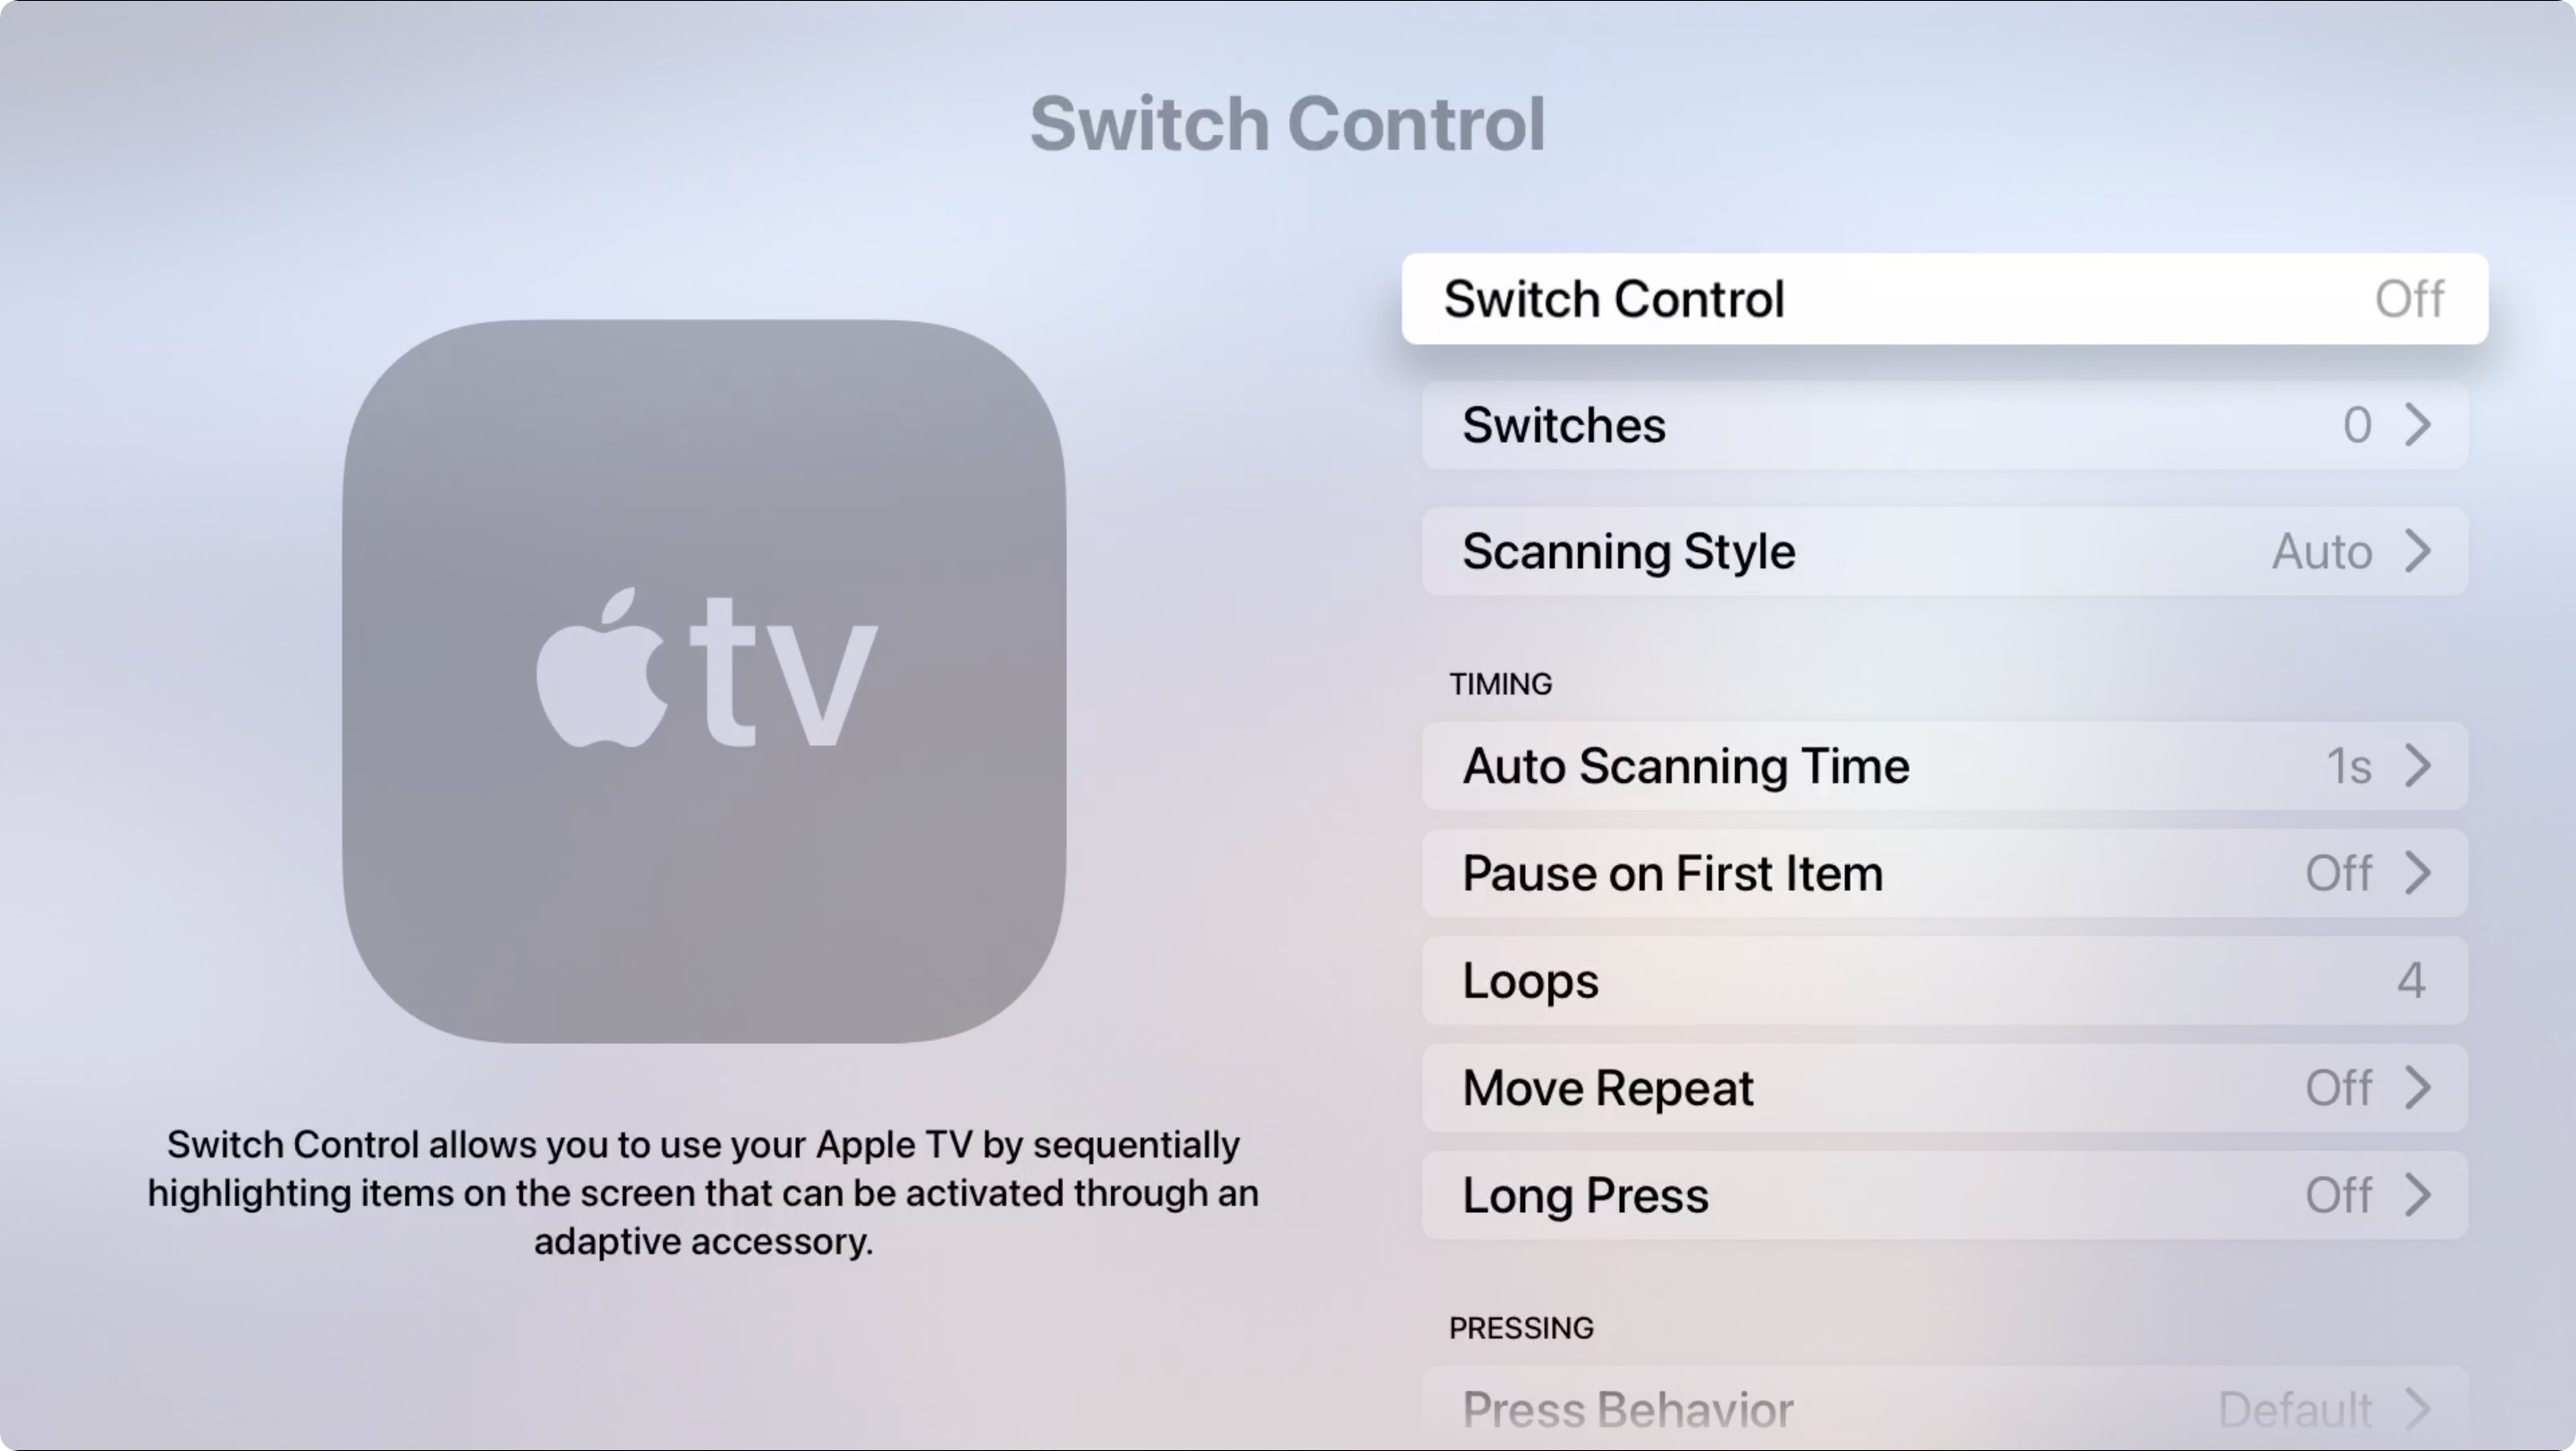 Apple TV Accessibility Switch Control